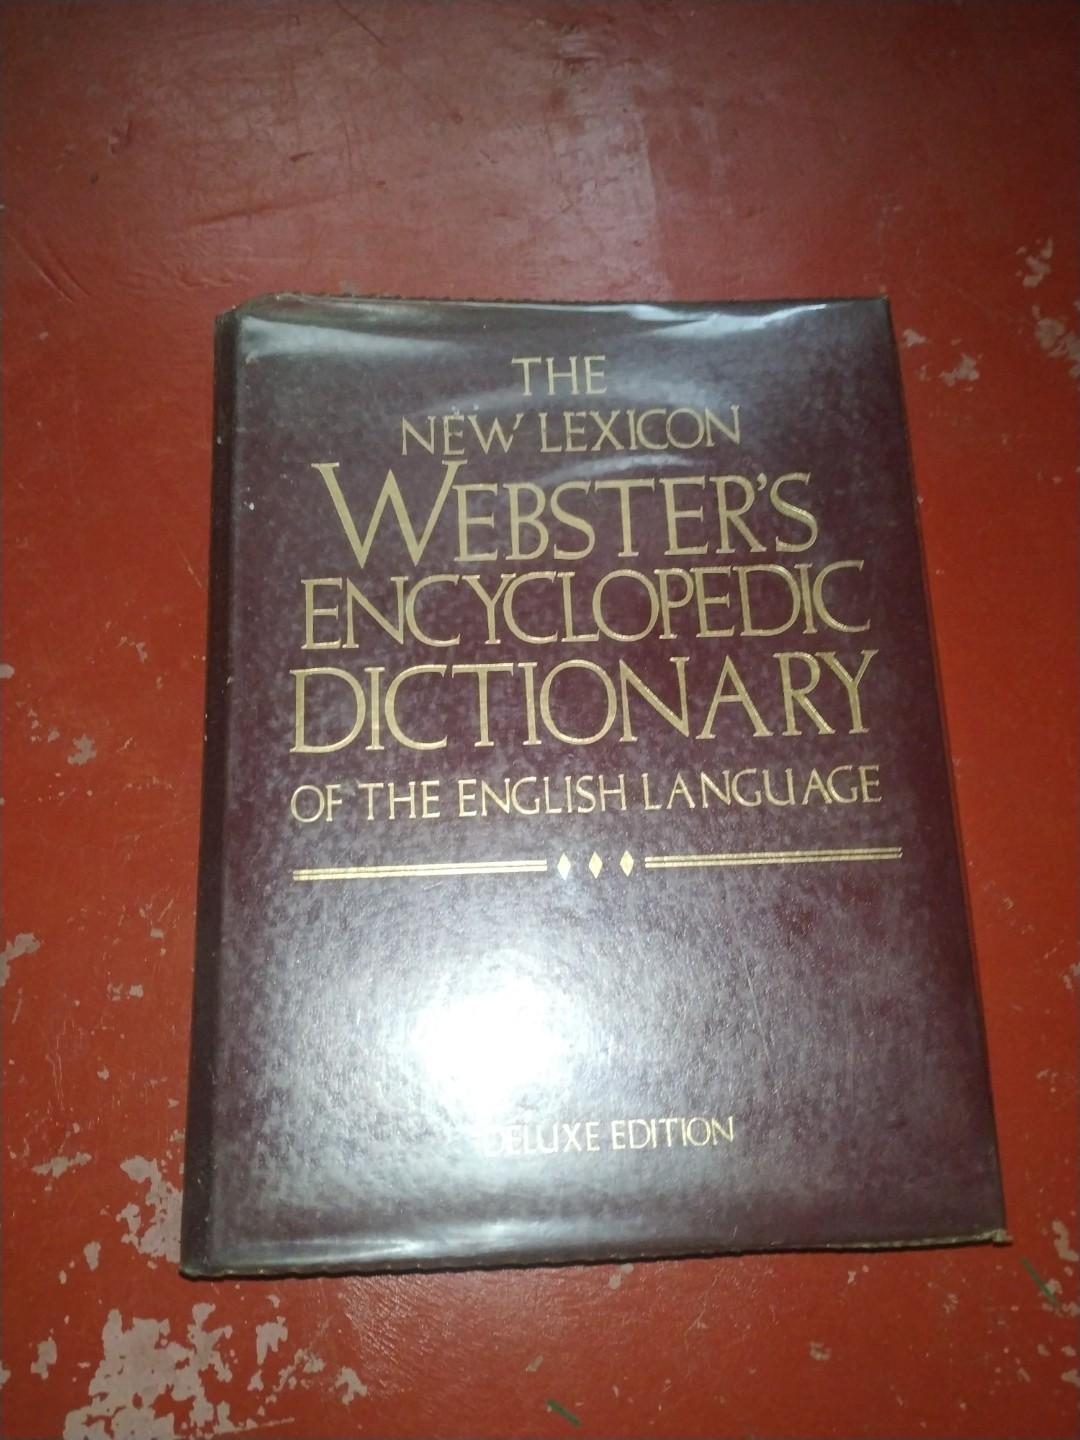 THE NEW LEXICON WEBSTER'S ENCYCLOPEDIC DICTIONARY OF THE ENGLISH LANGUAGE